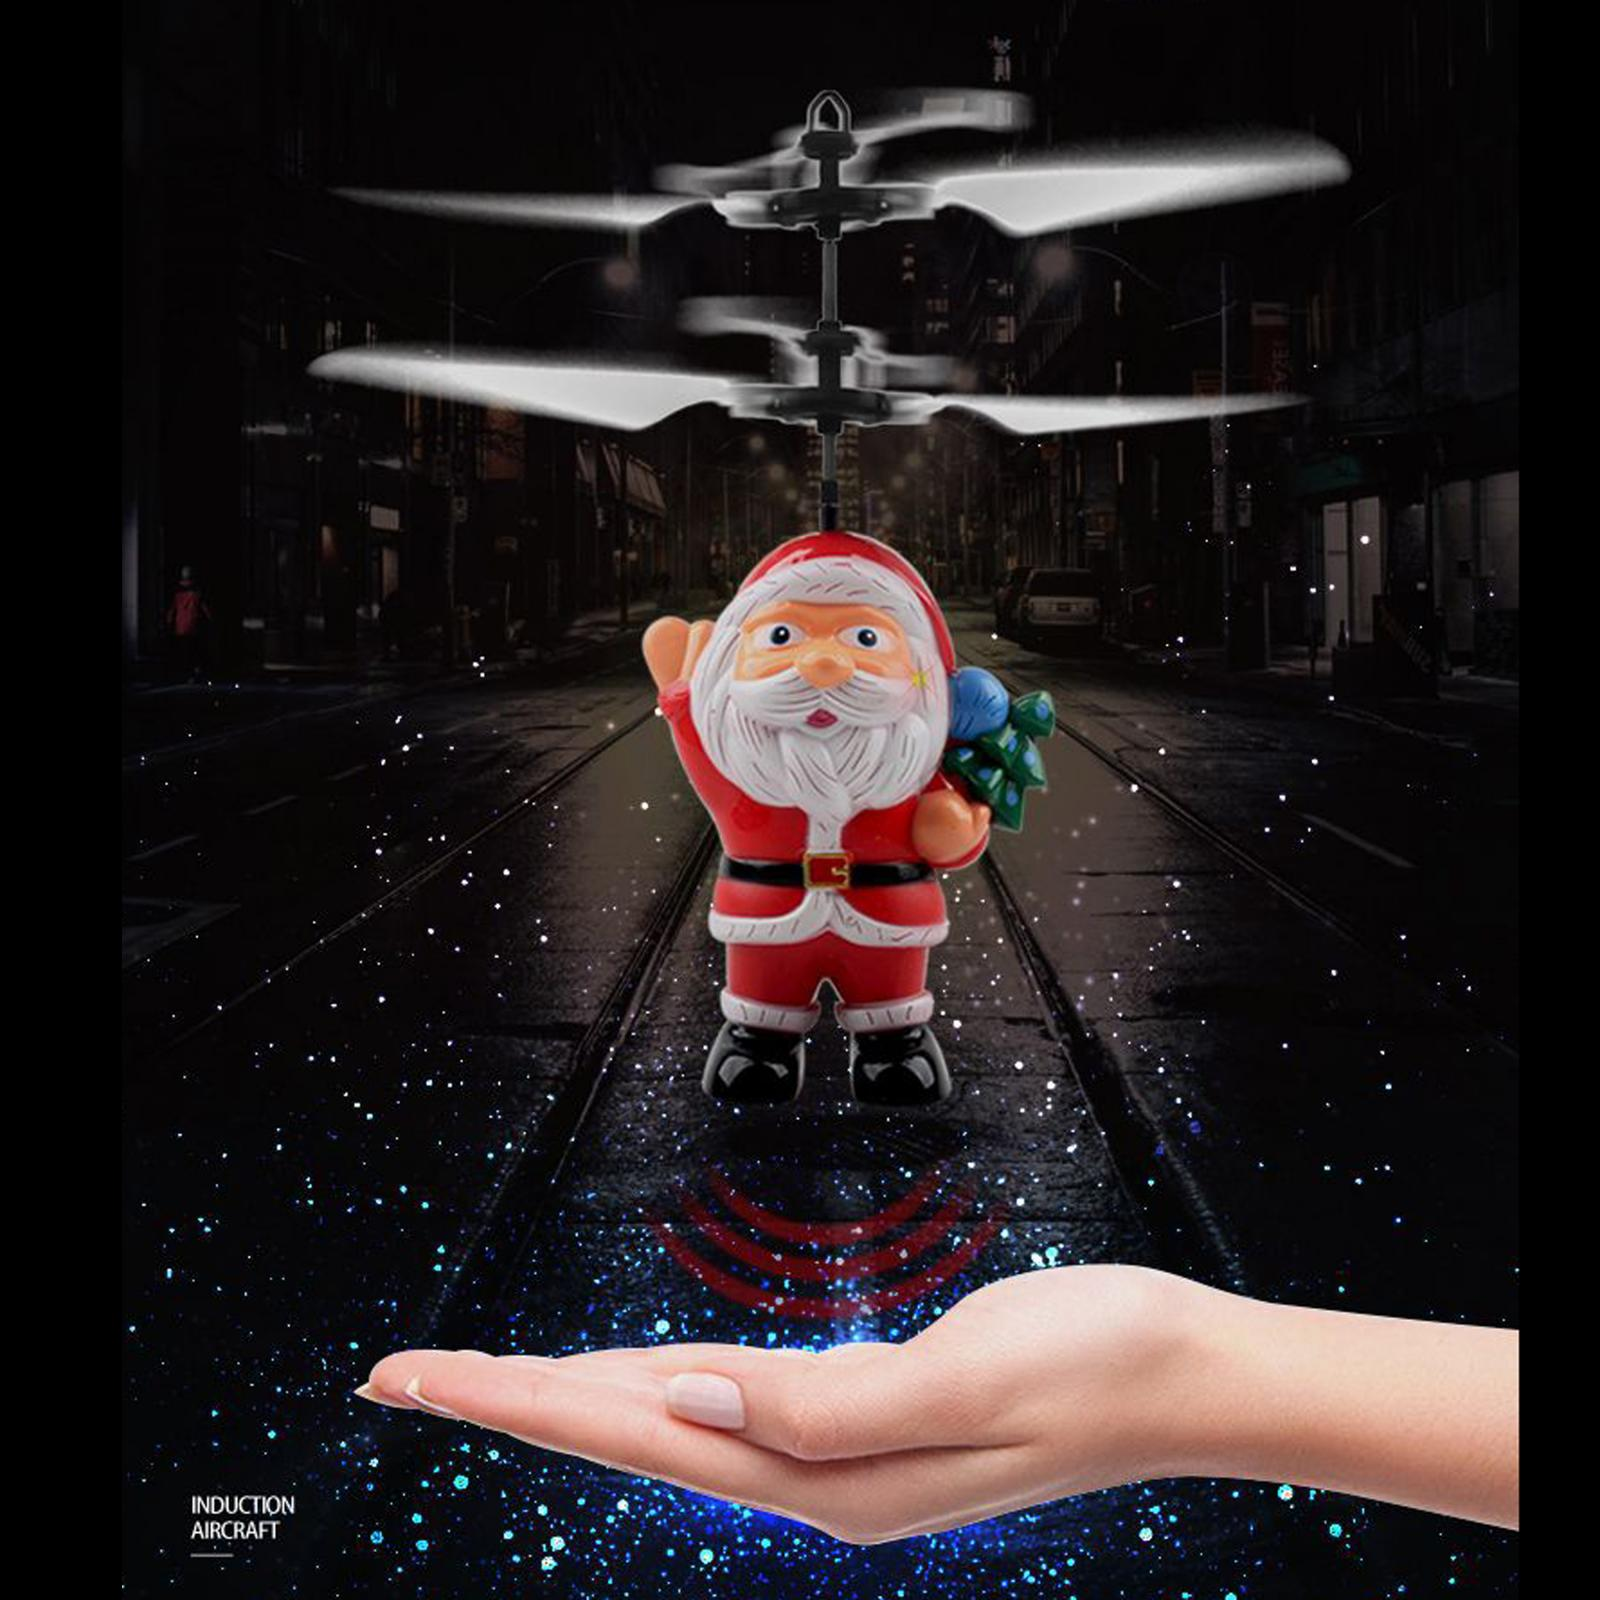 Hand Flying UFO  Mini Induction RC Airplane Flying Toy Kids Helicopter